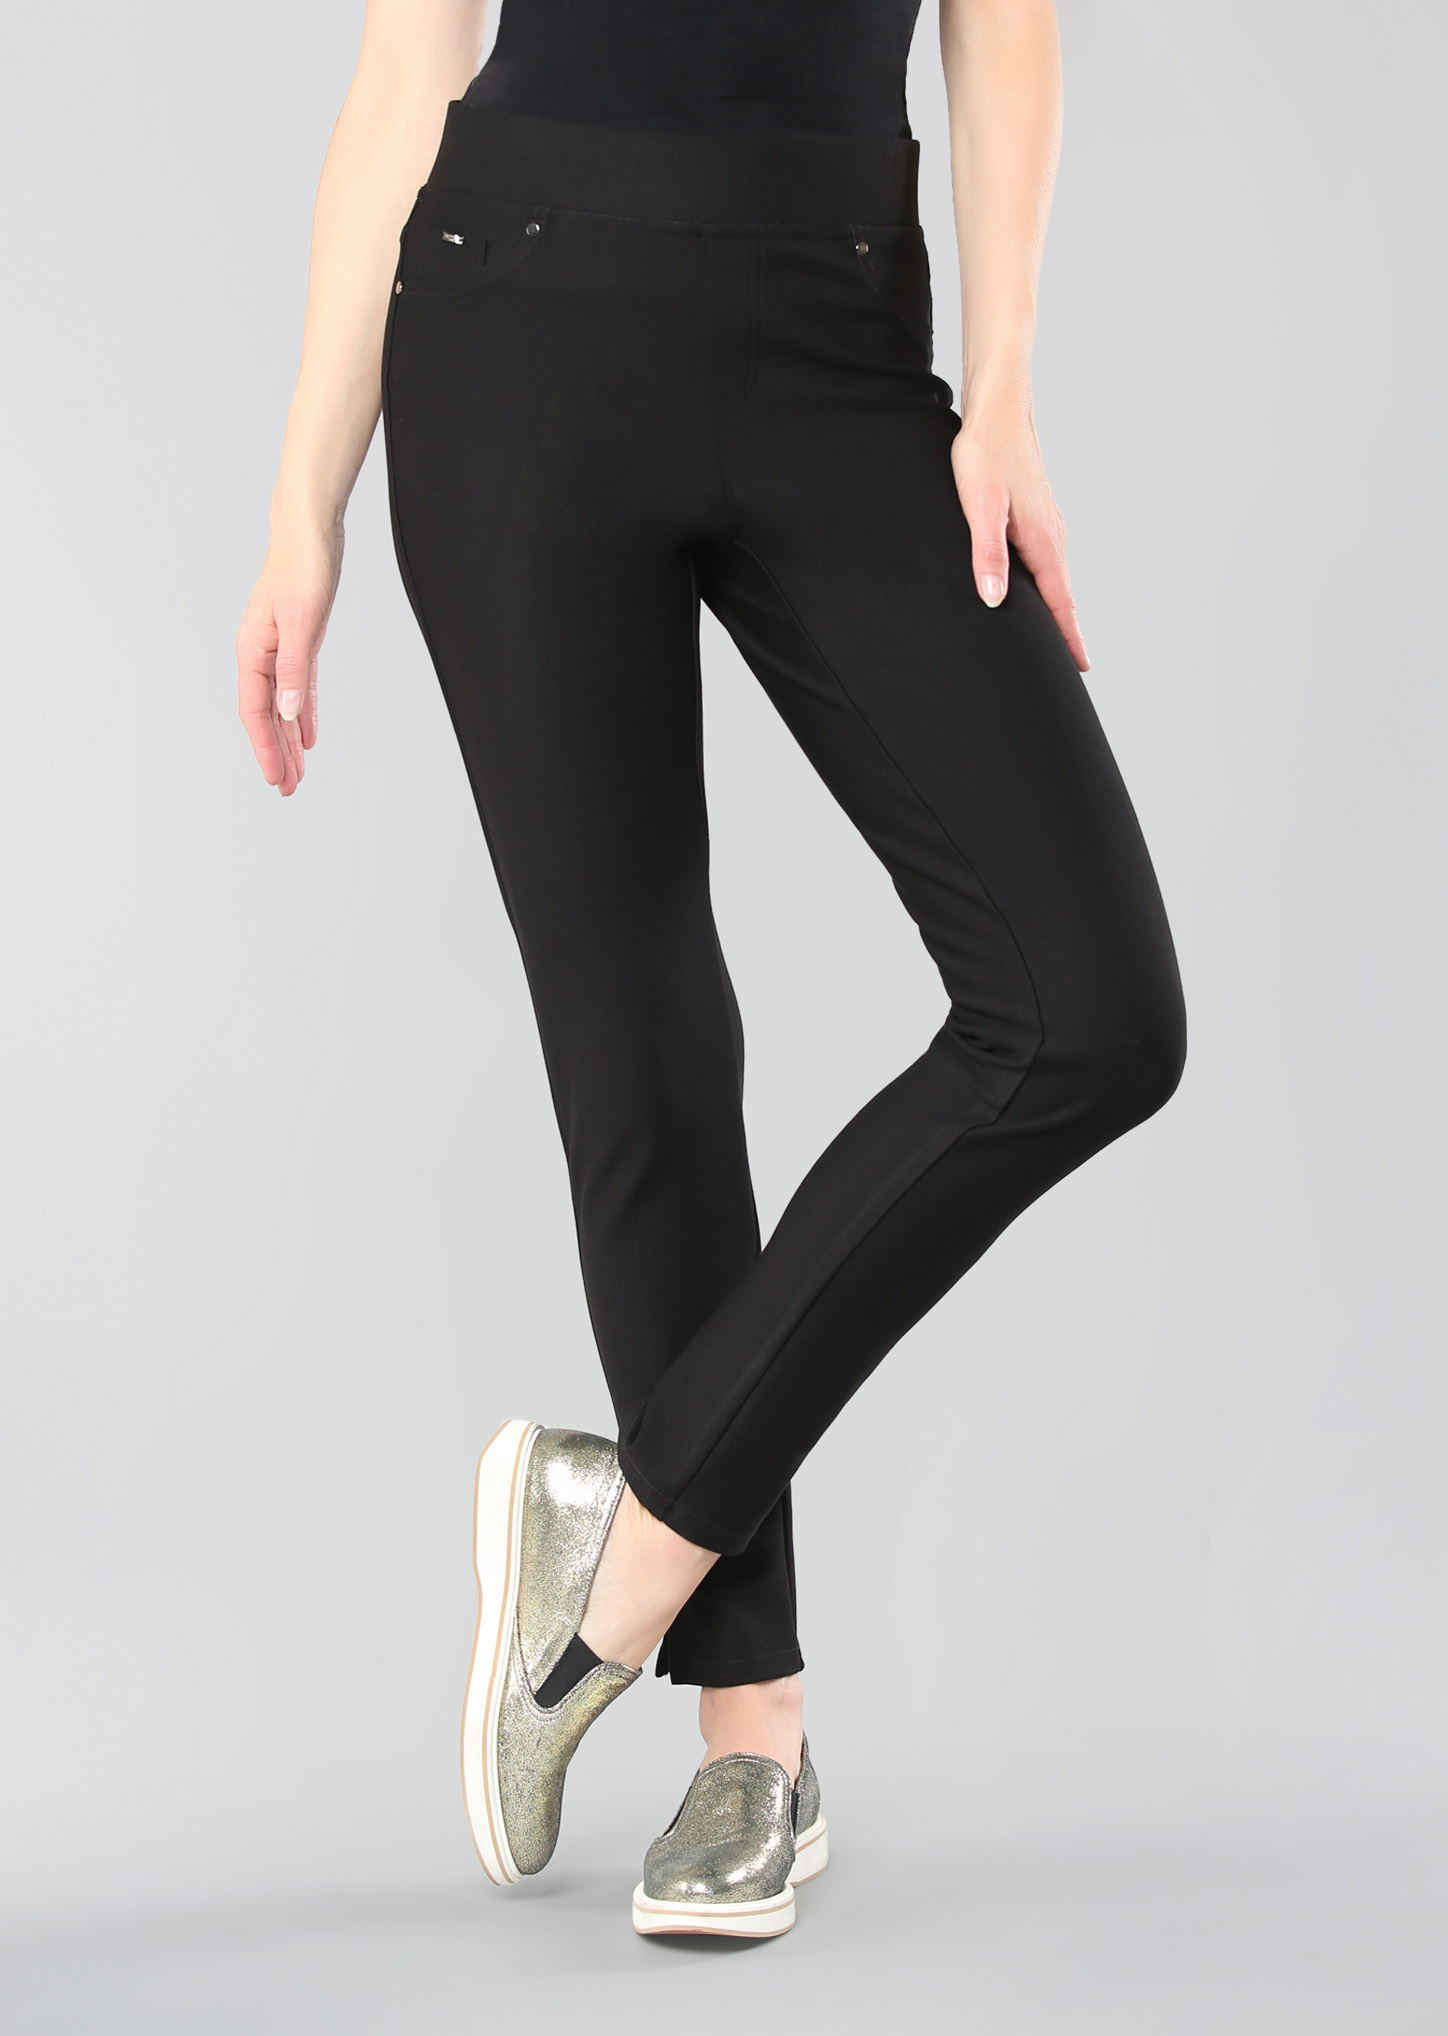 Lisette L. Thinny Pant Style 733684 Wellington Twill Color Black